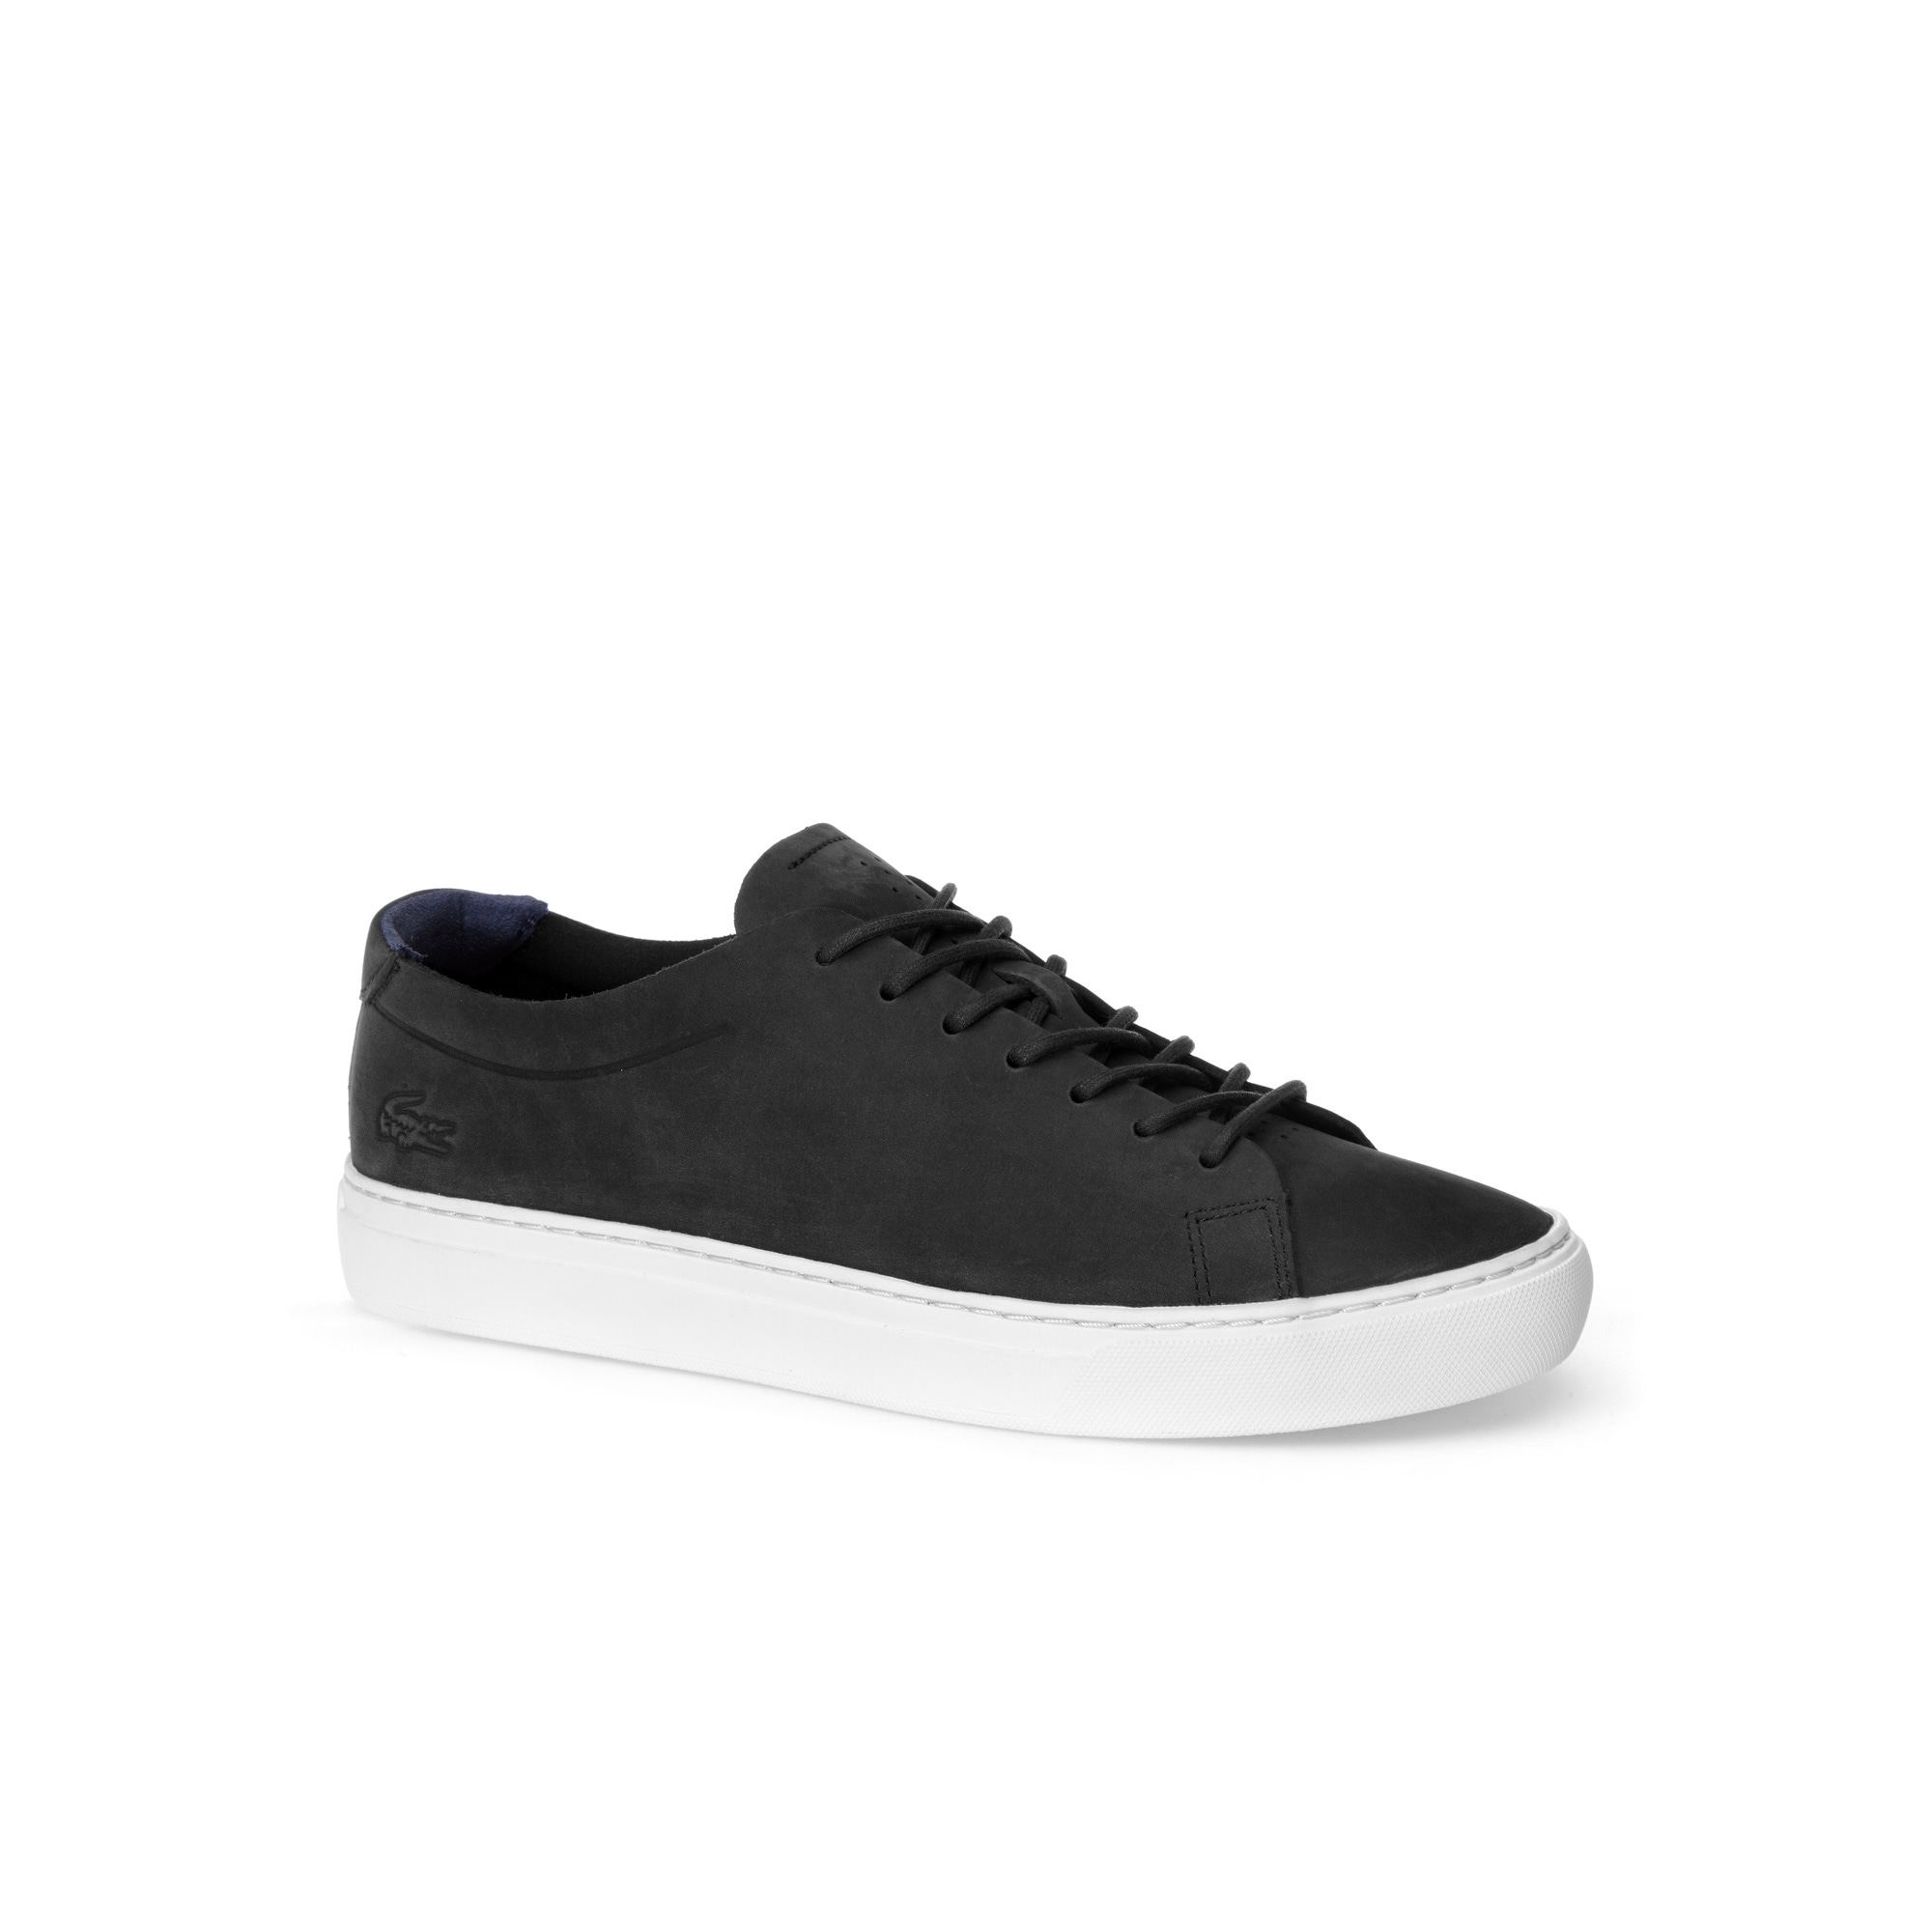 Men's L.12.12 UNLINED Nubuck Leather Trainers